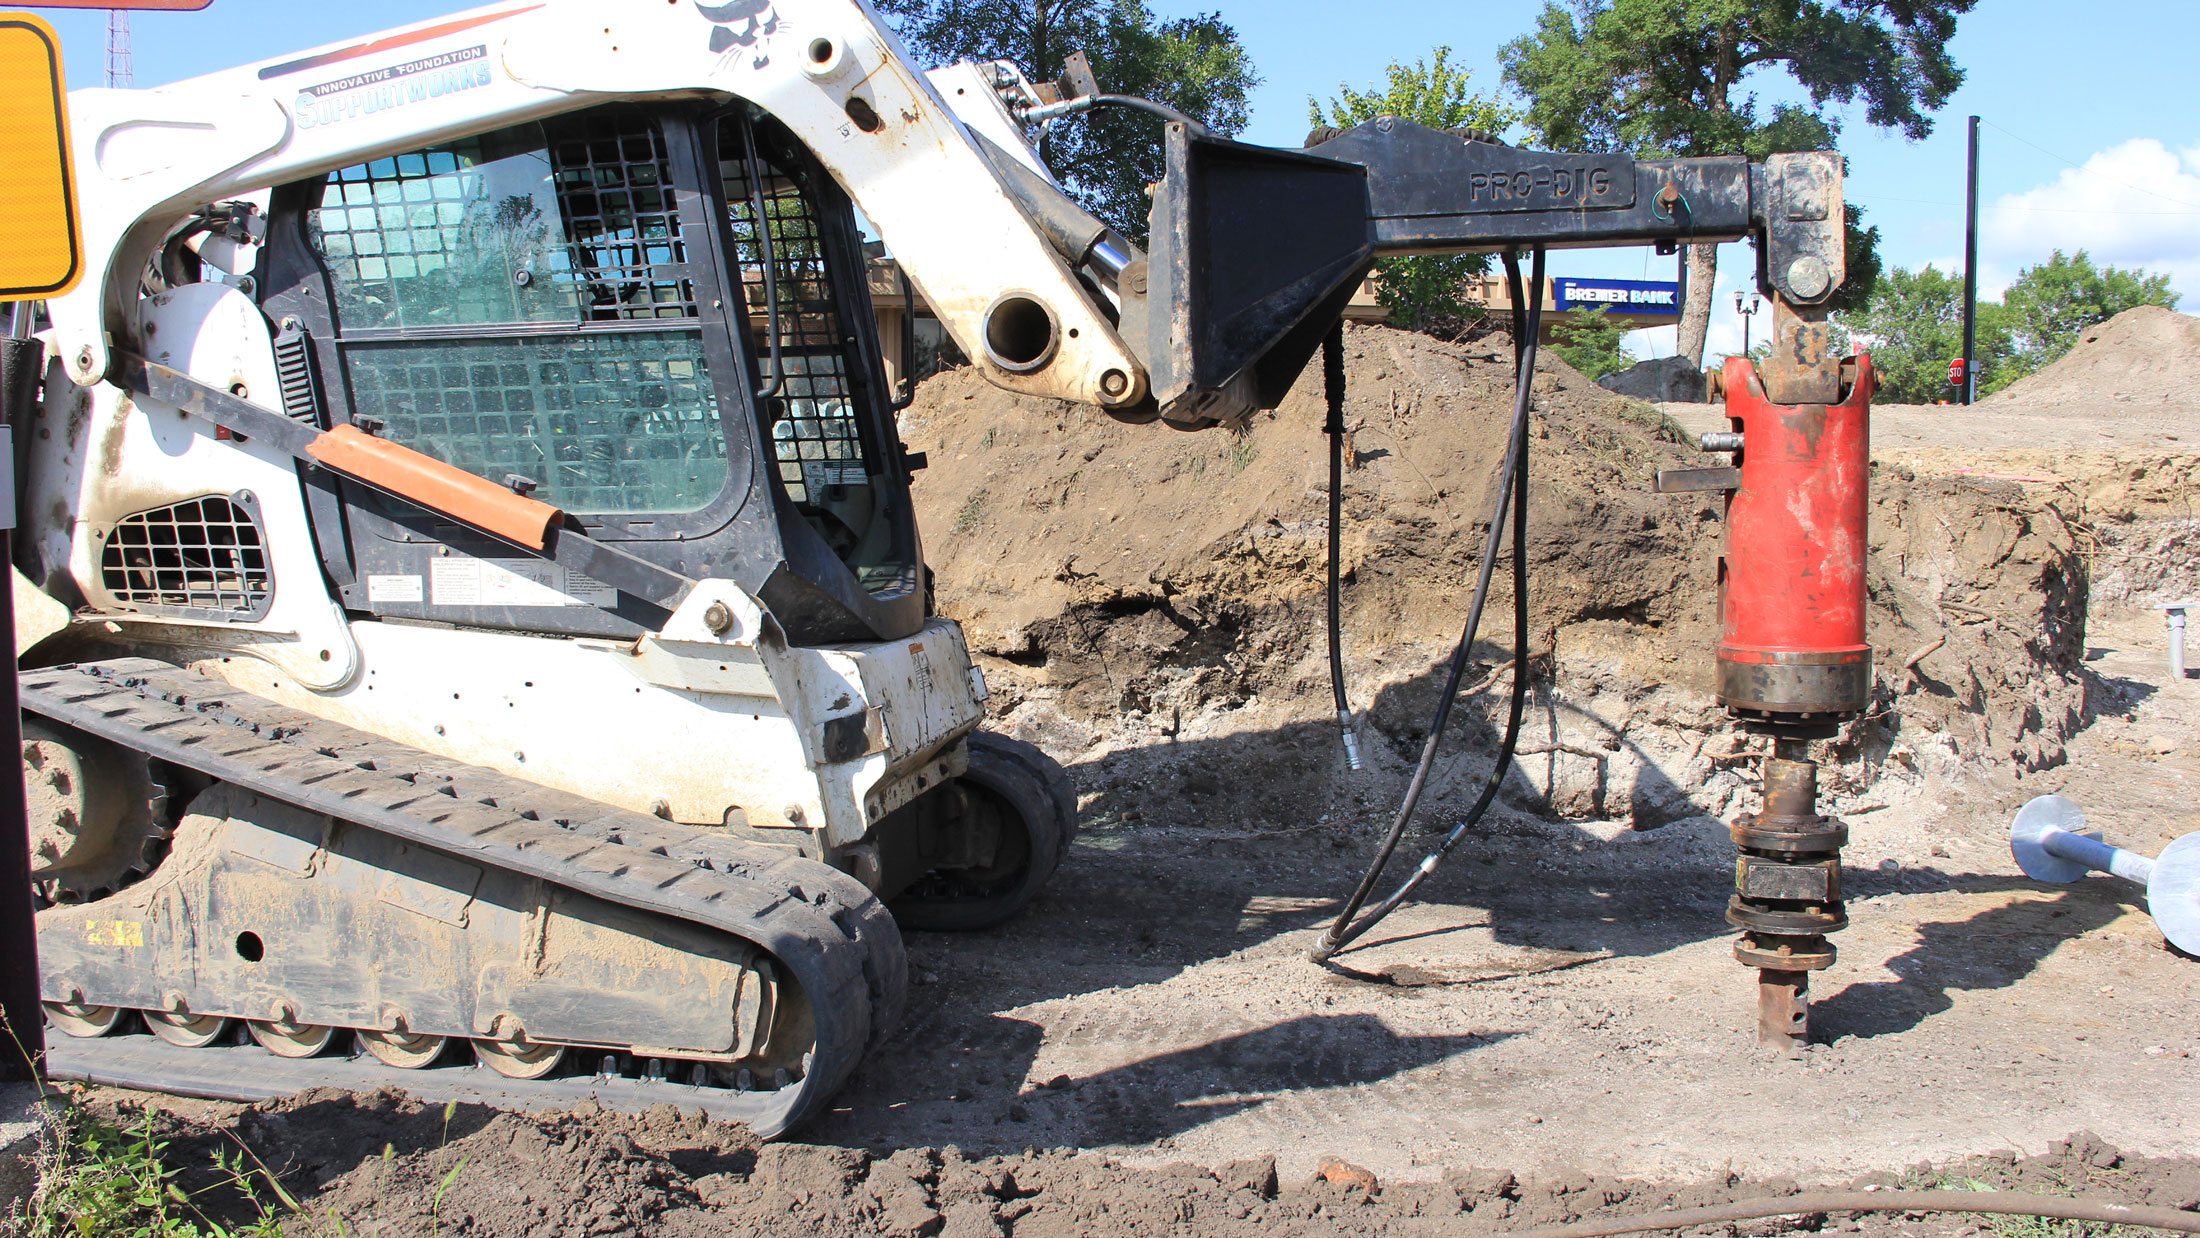 This machine uses the torque mechanism to screw the piles into the ground.